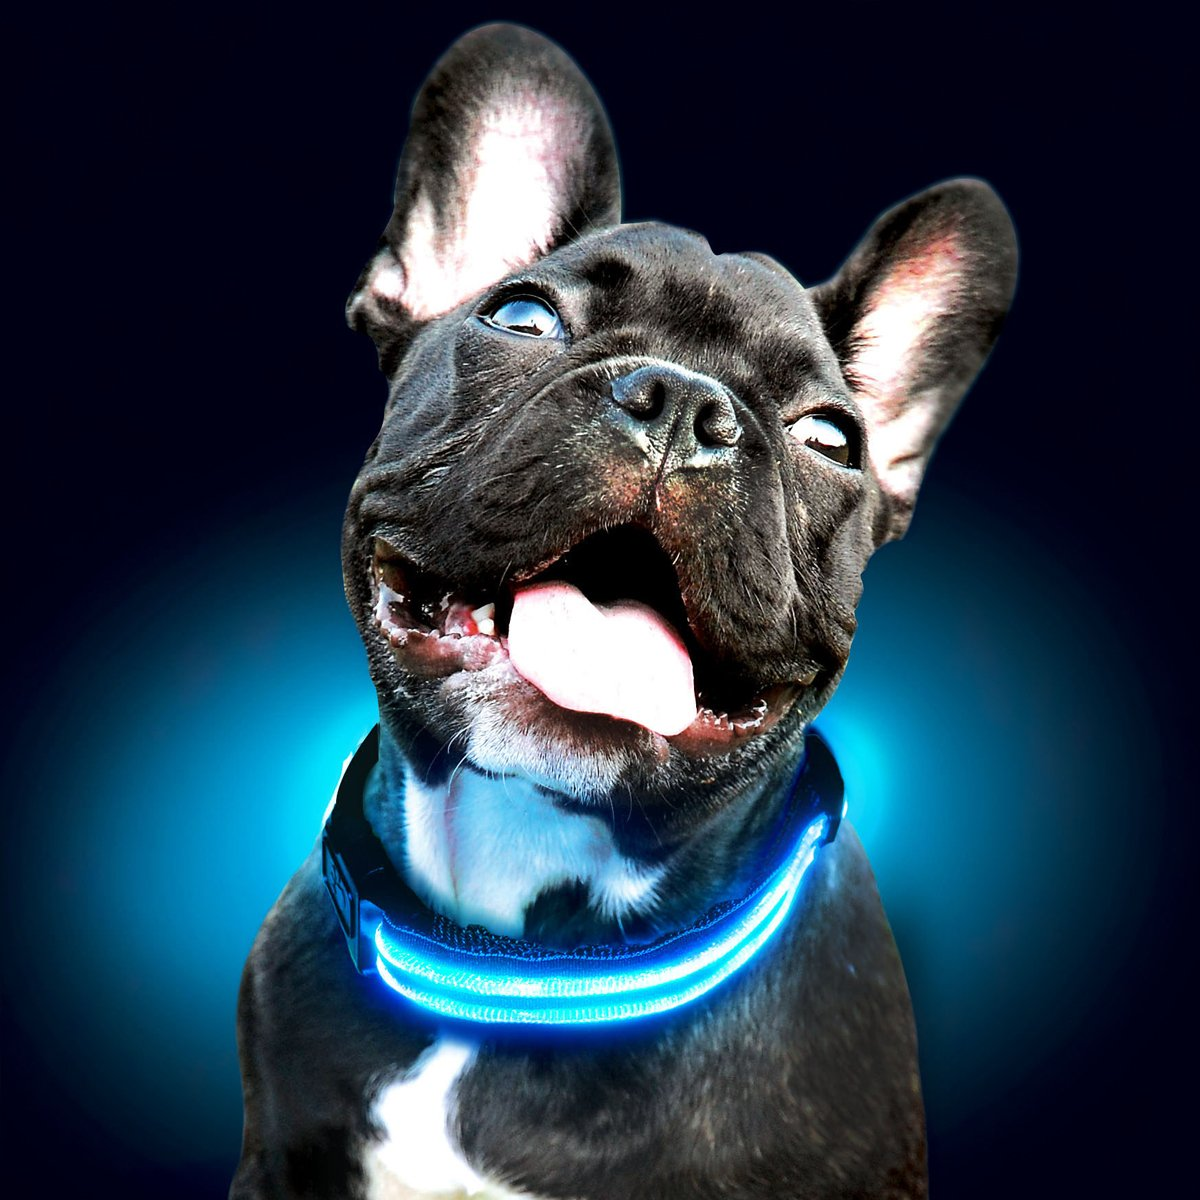 Ultimate LED Dog Collar – USB Rechargeable, cable included, 5 awesome colors. Ultra Bright, Durable, Made to last. Make your dog more visible at night.